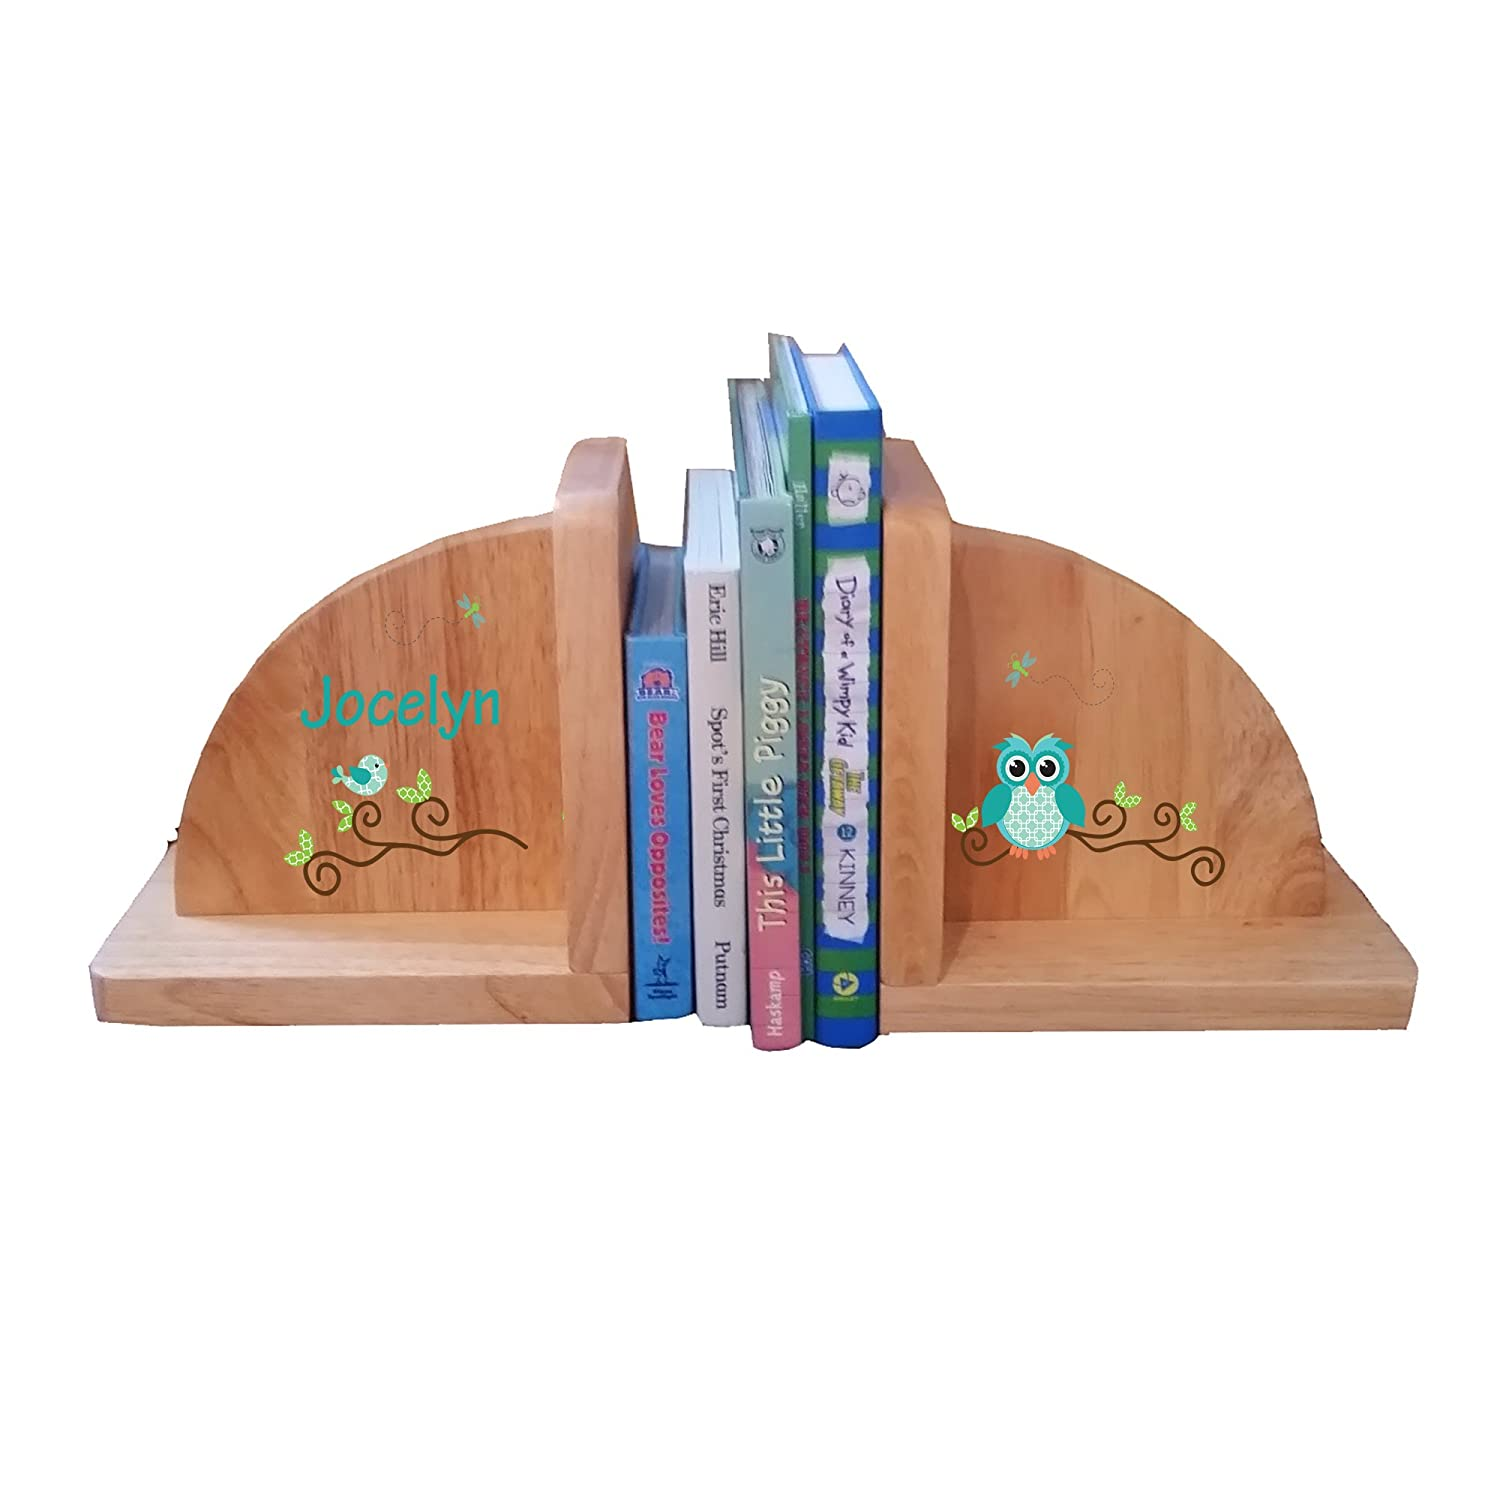 Personalized Gingham Owl Natural Childrens Wooden Bookends MyBambino ENDS-nat-PT-234